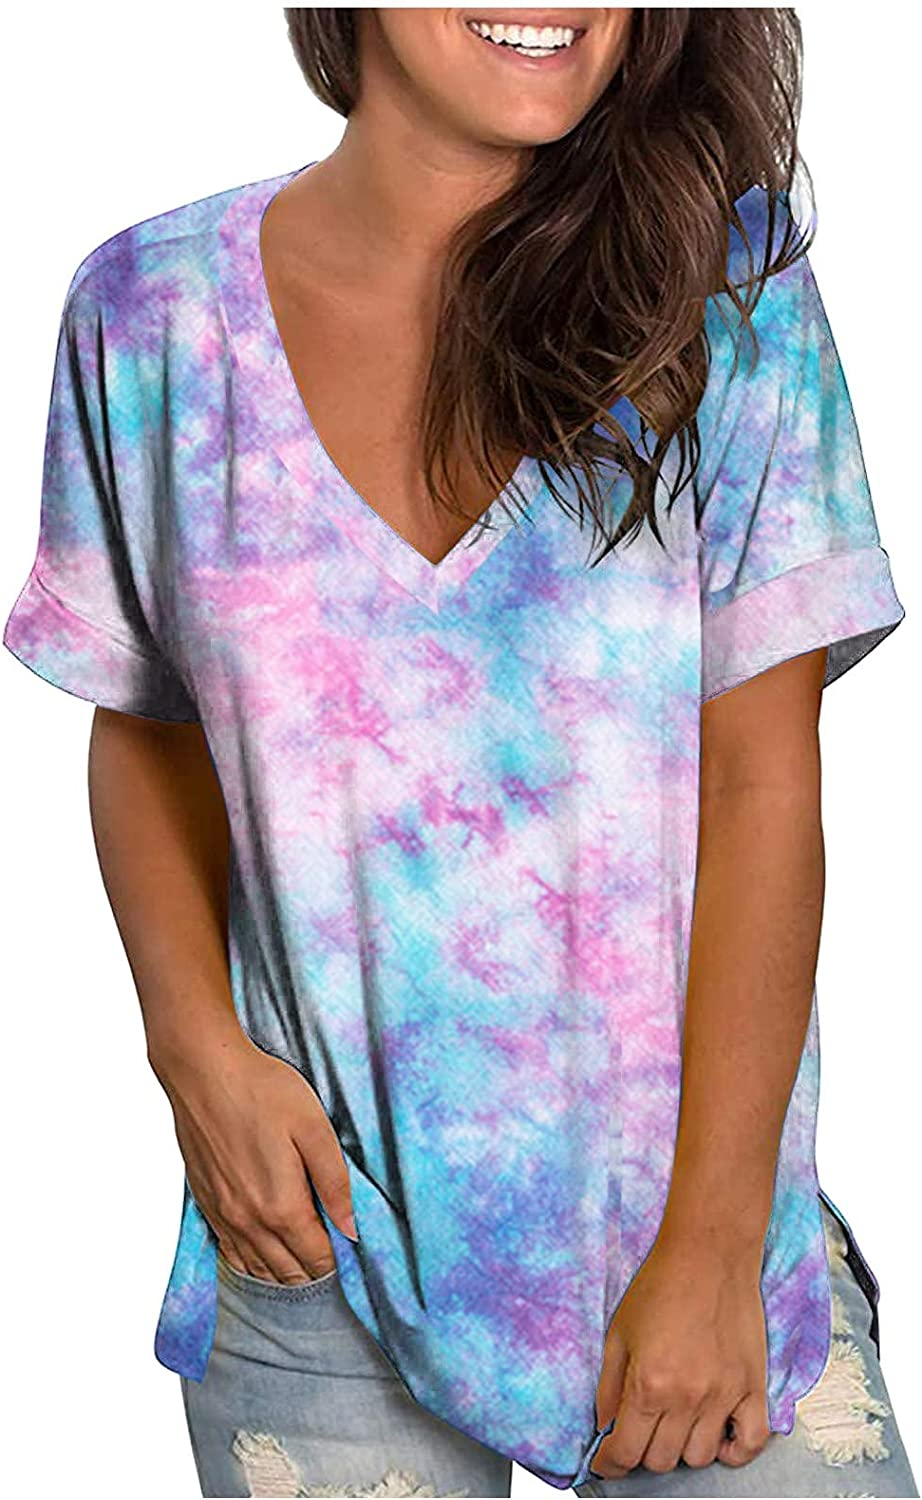 FABIURT Womens V Neck T Shirts Roll Up Short Sleeve Loose Fit Tie Dye Tunic Casual Plus Size Basic Tees Henley Tops